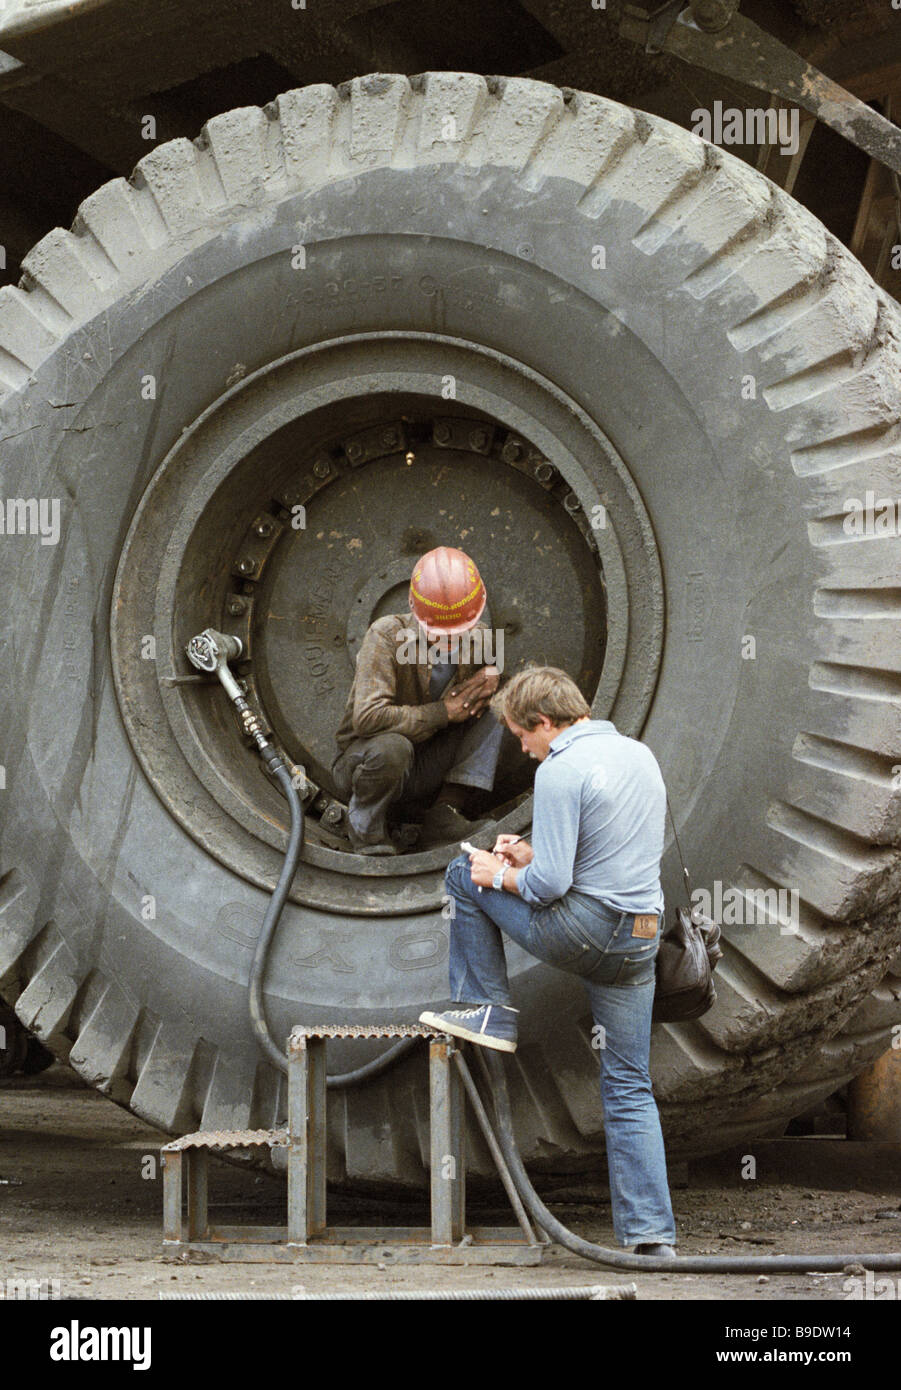 Correspondent interviews worker in front of huge wheel - Stock Image